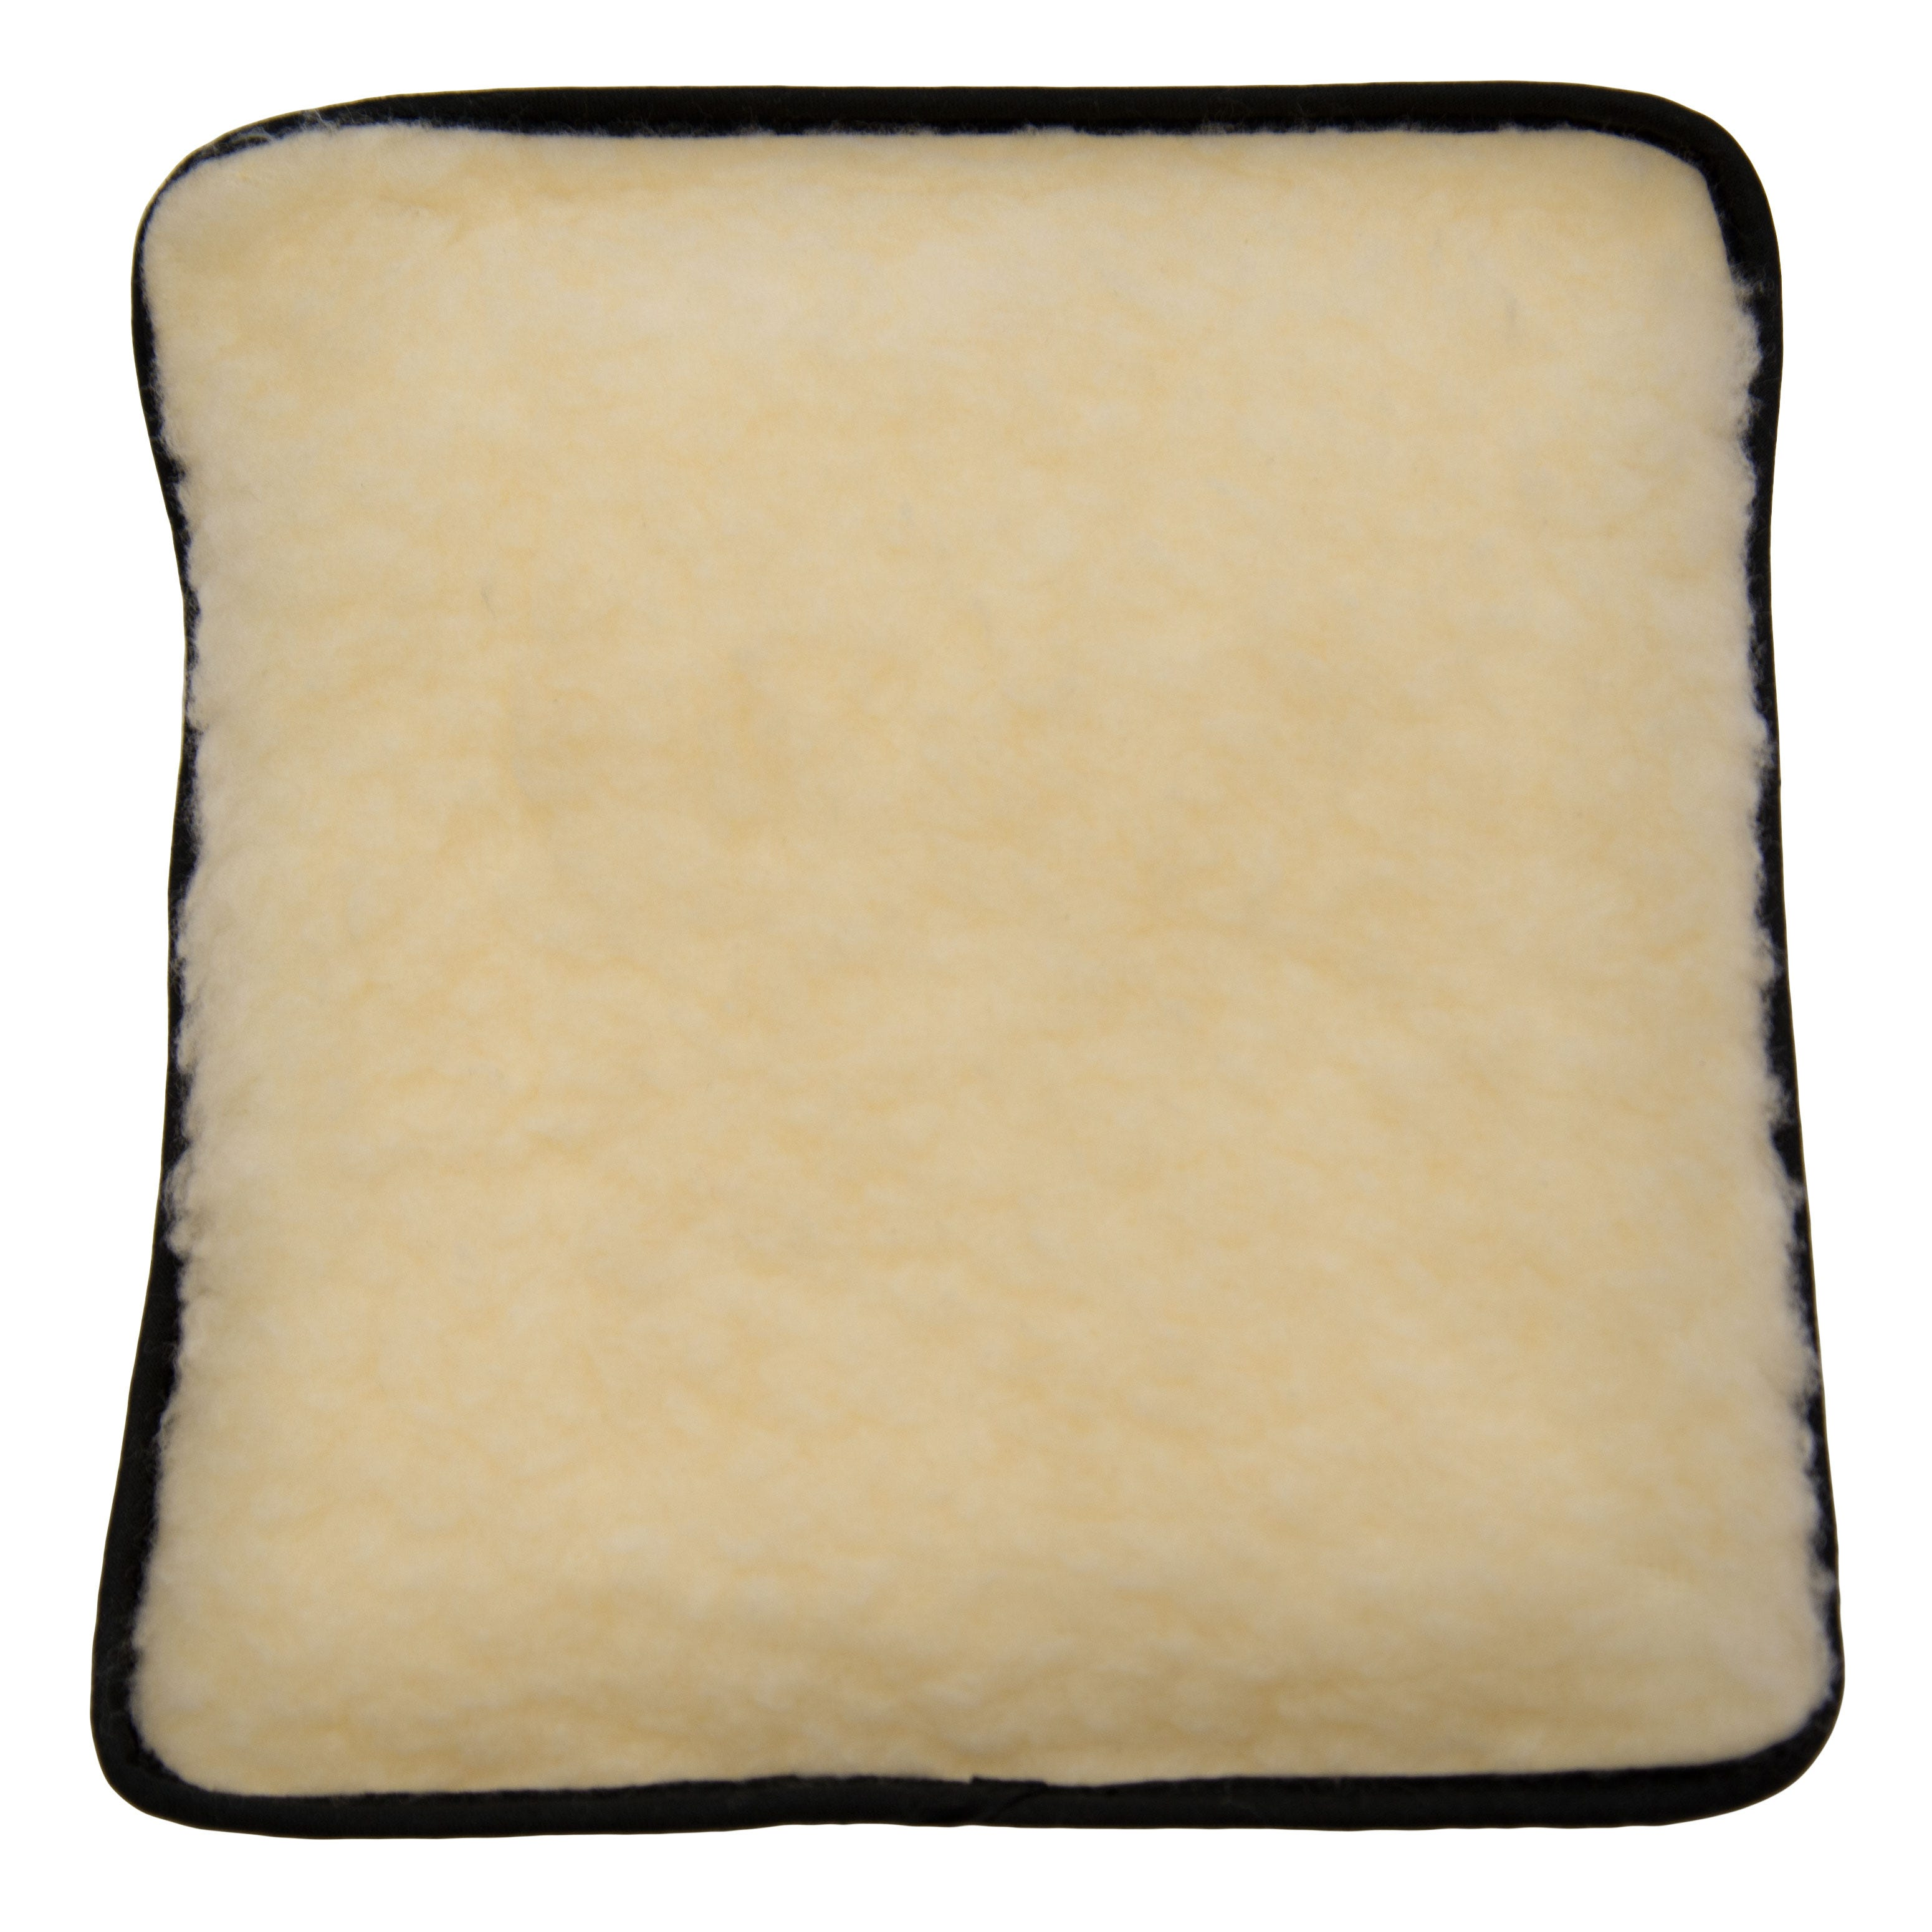 Compare prices for Hotties Lambswool Micro Hottie Microwave Hot Water Bottle